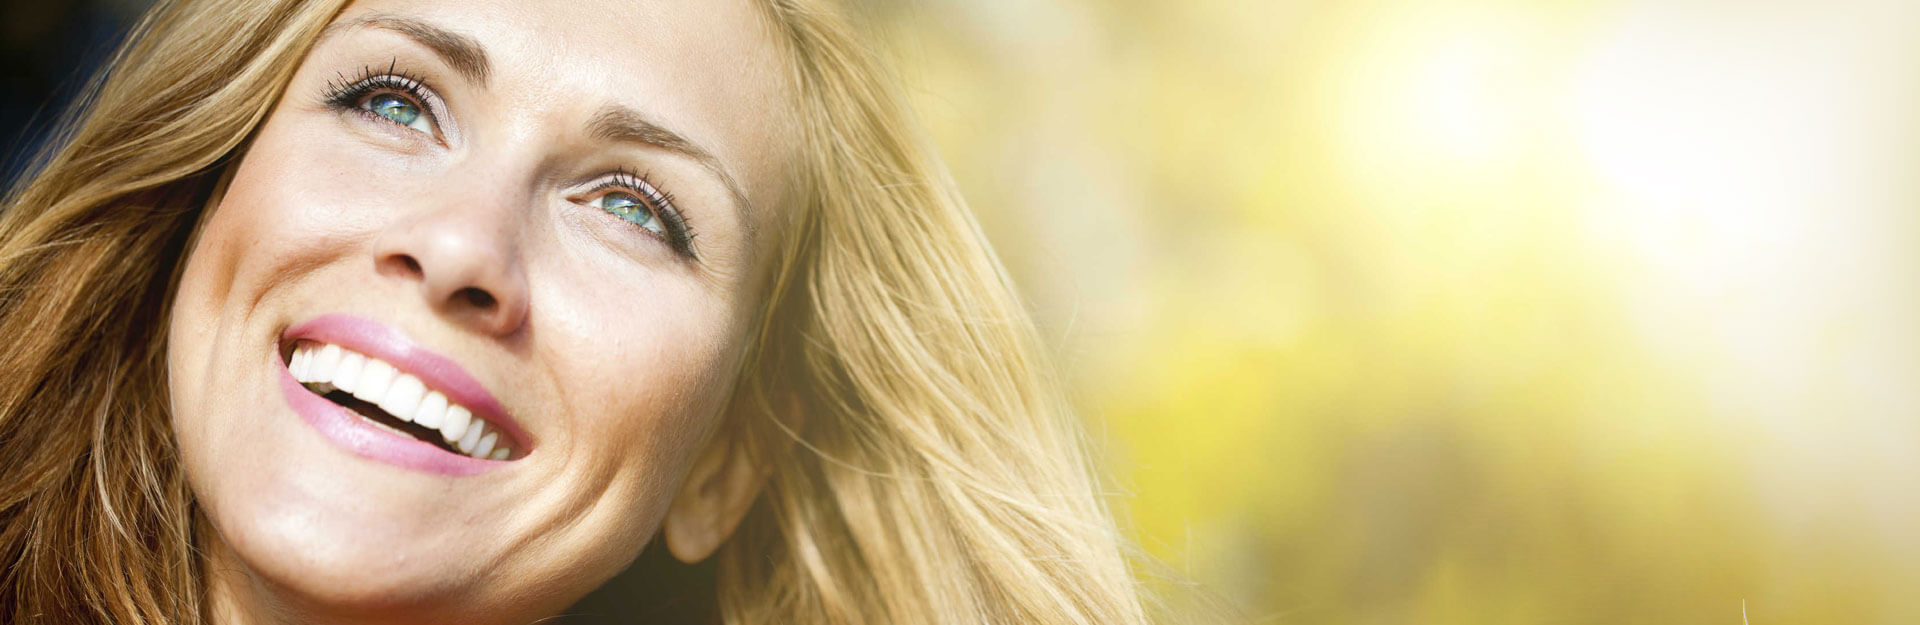 Get Whiter, Brighter Teeth with Teeth Whitening